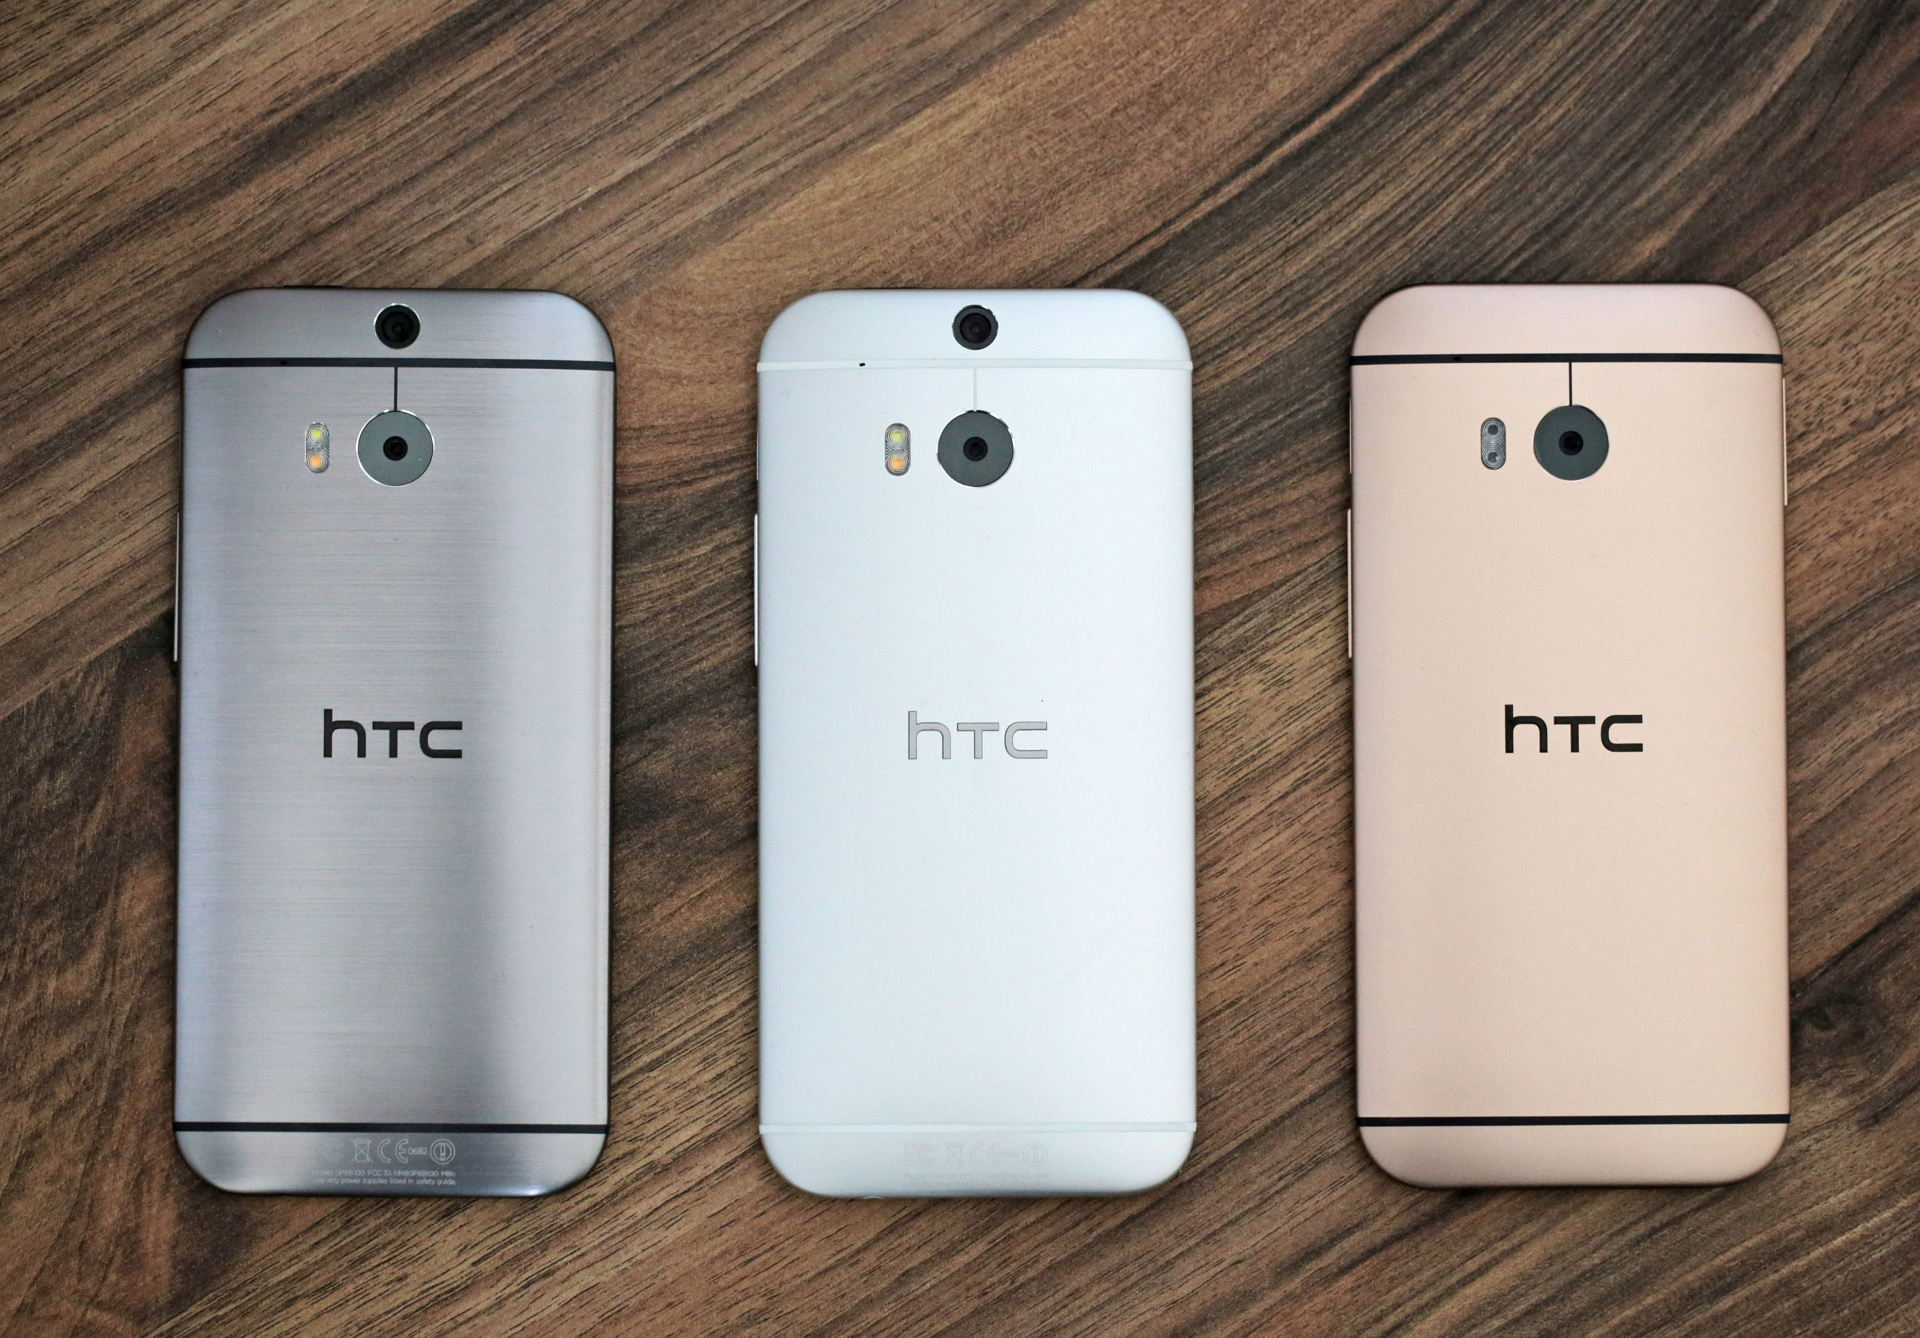 htc-one-farben-8a99eded8865a99f